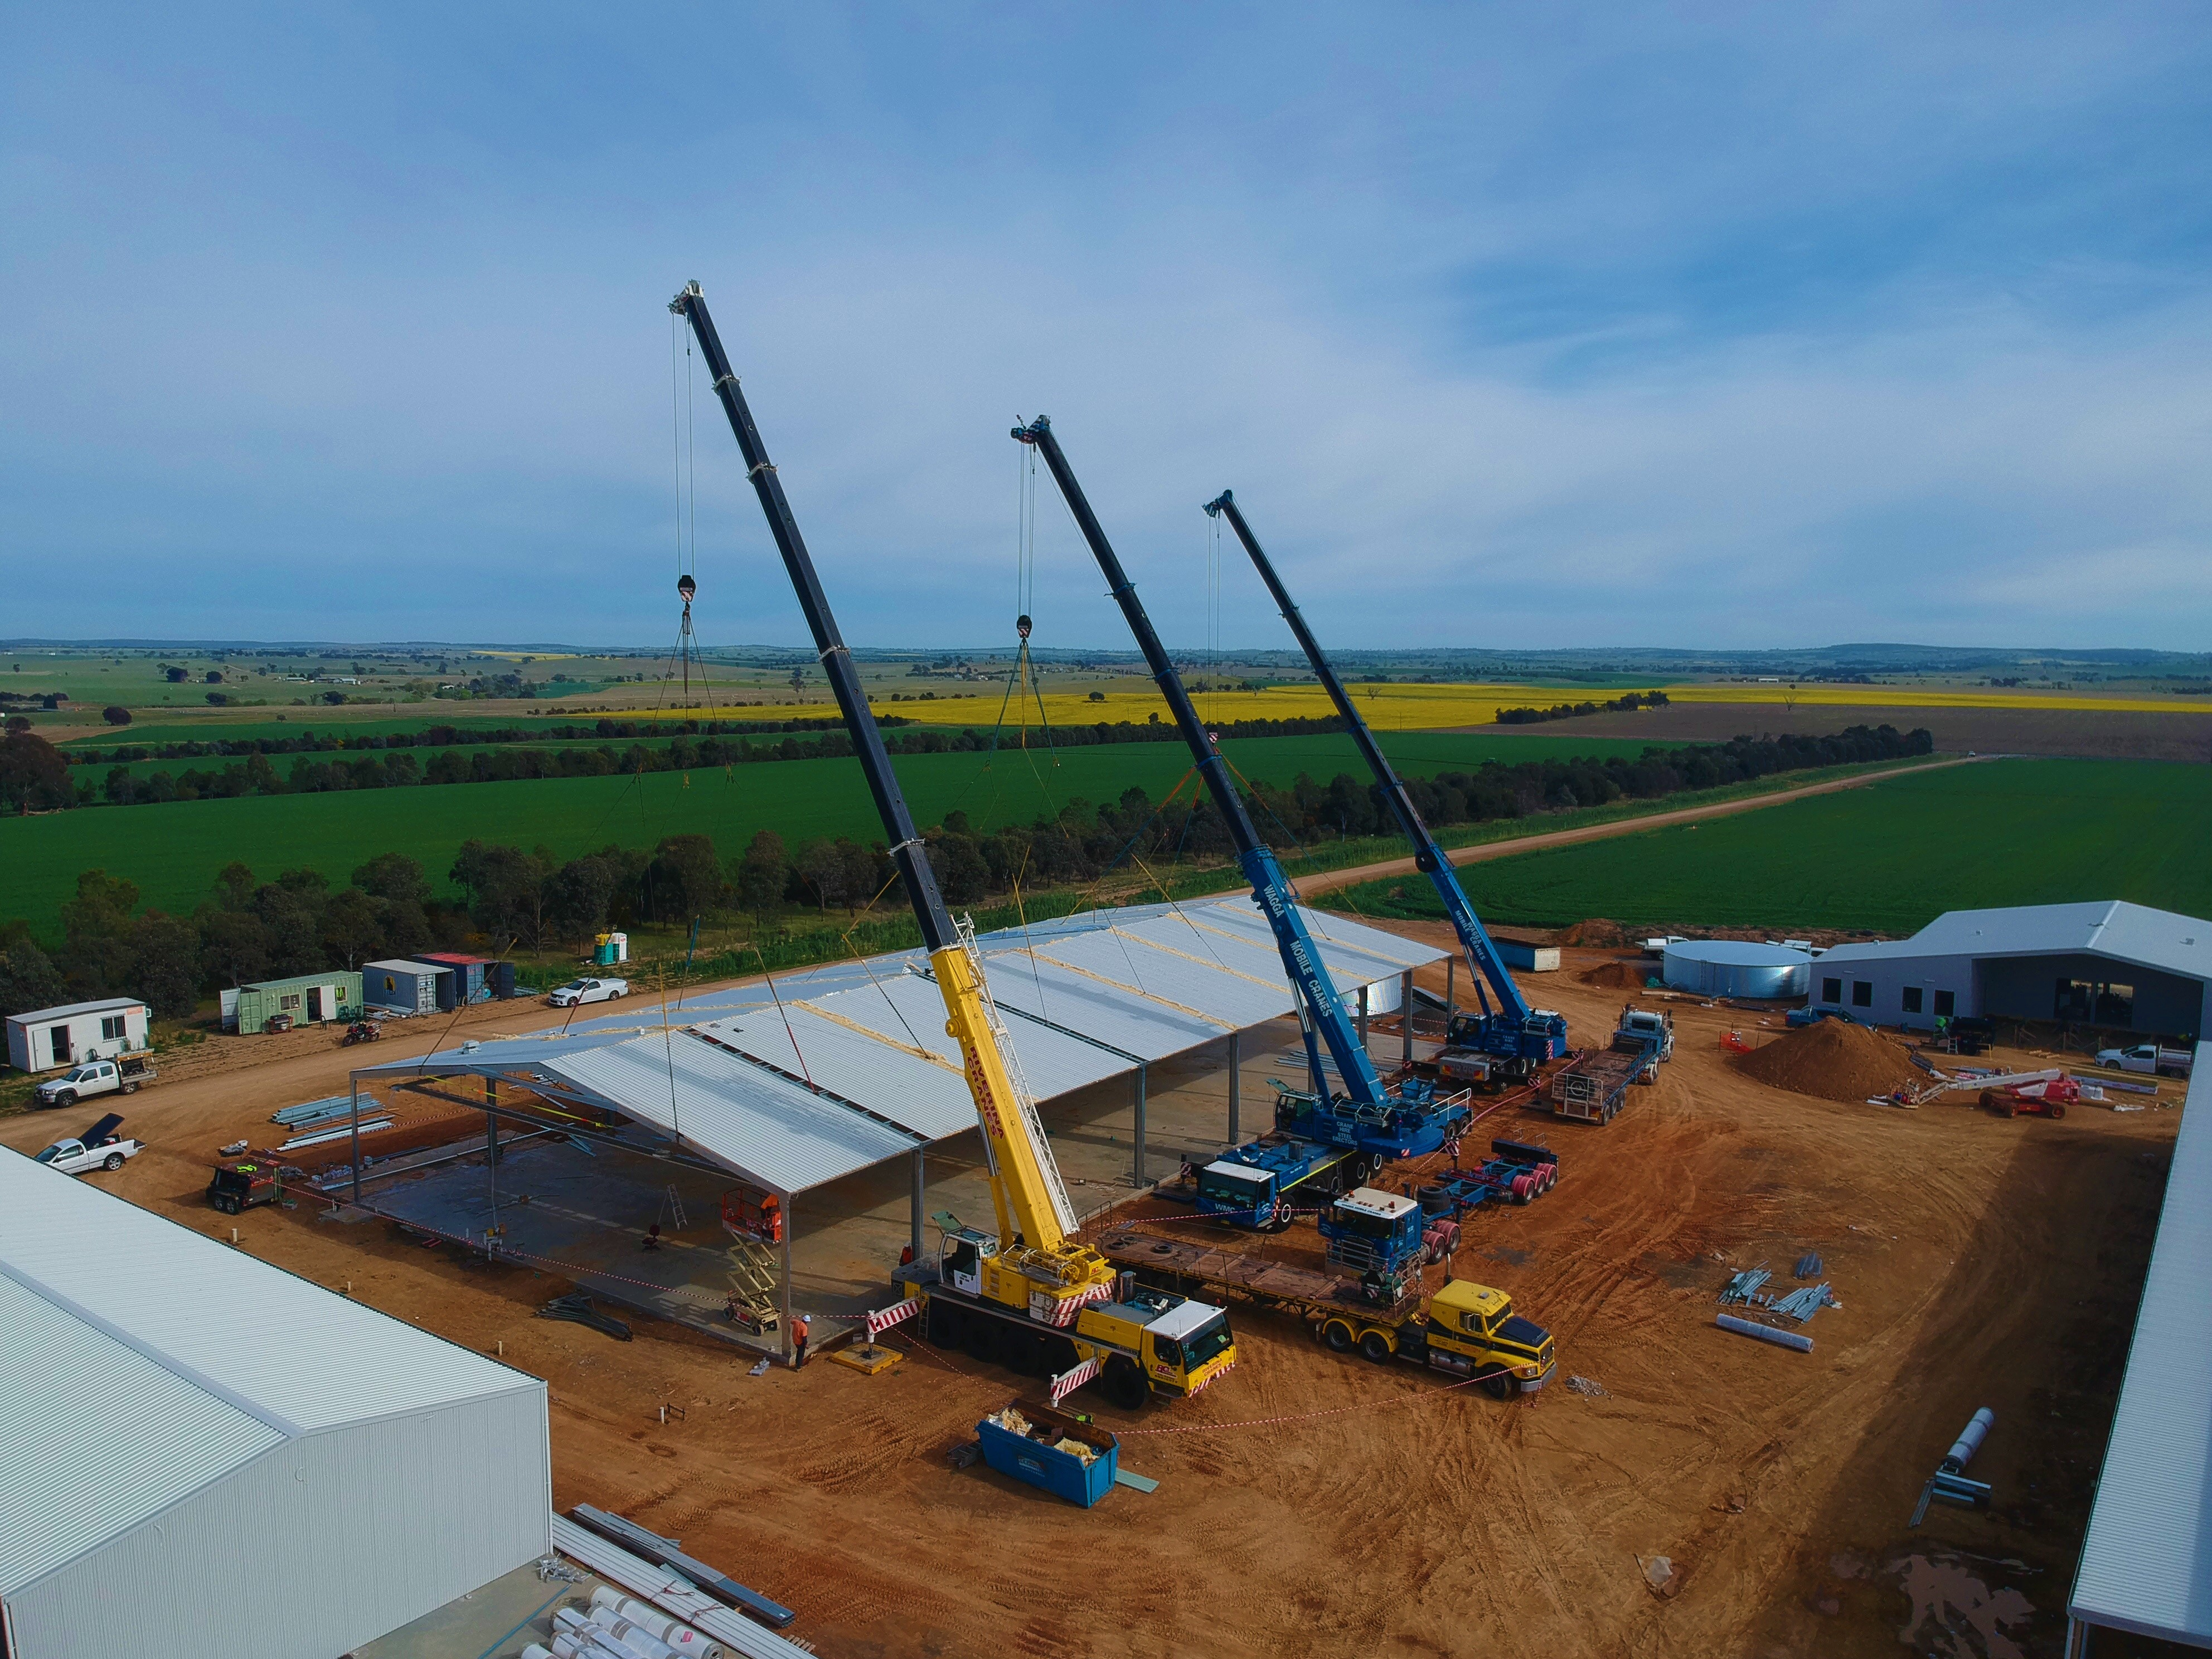 Three cranes lift the roof of a workshop into position